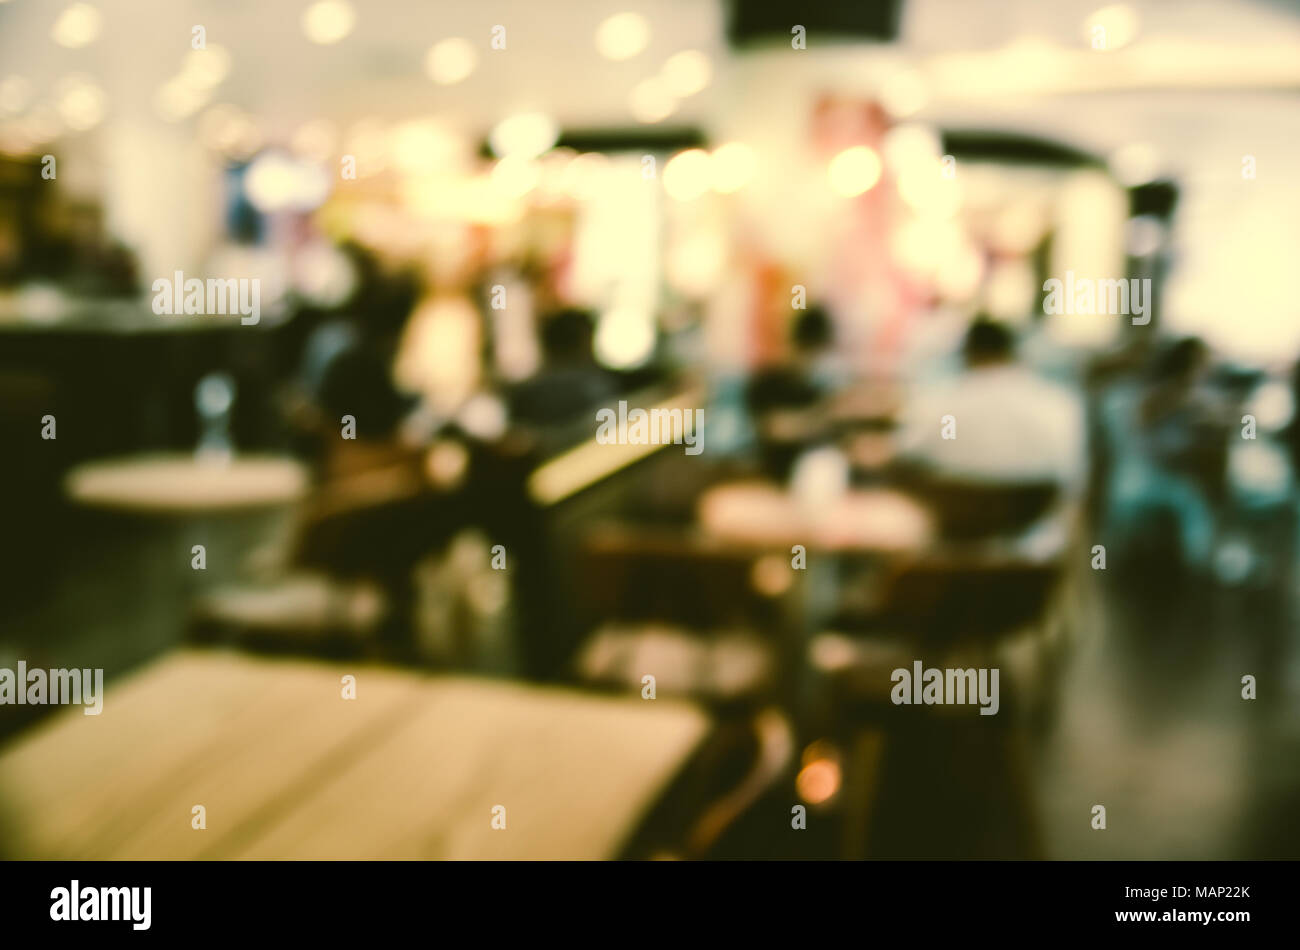 Blurred background made with Vintage Tones,Coffee shop blur background with bokeh and working man in cafe - Stock Image